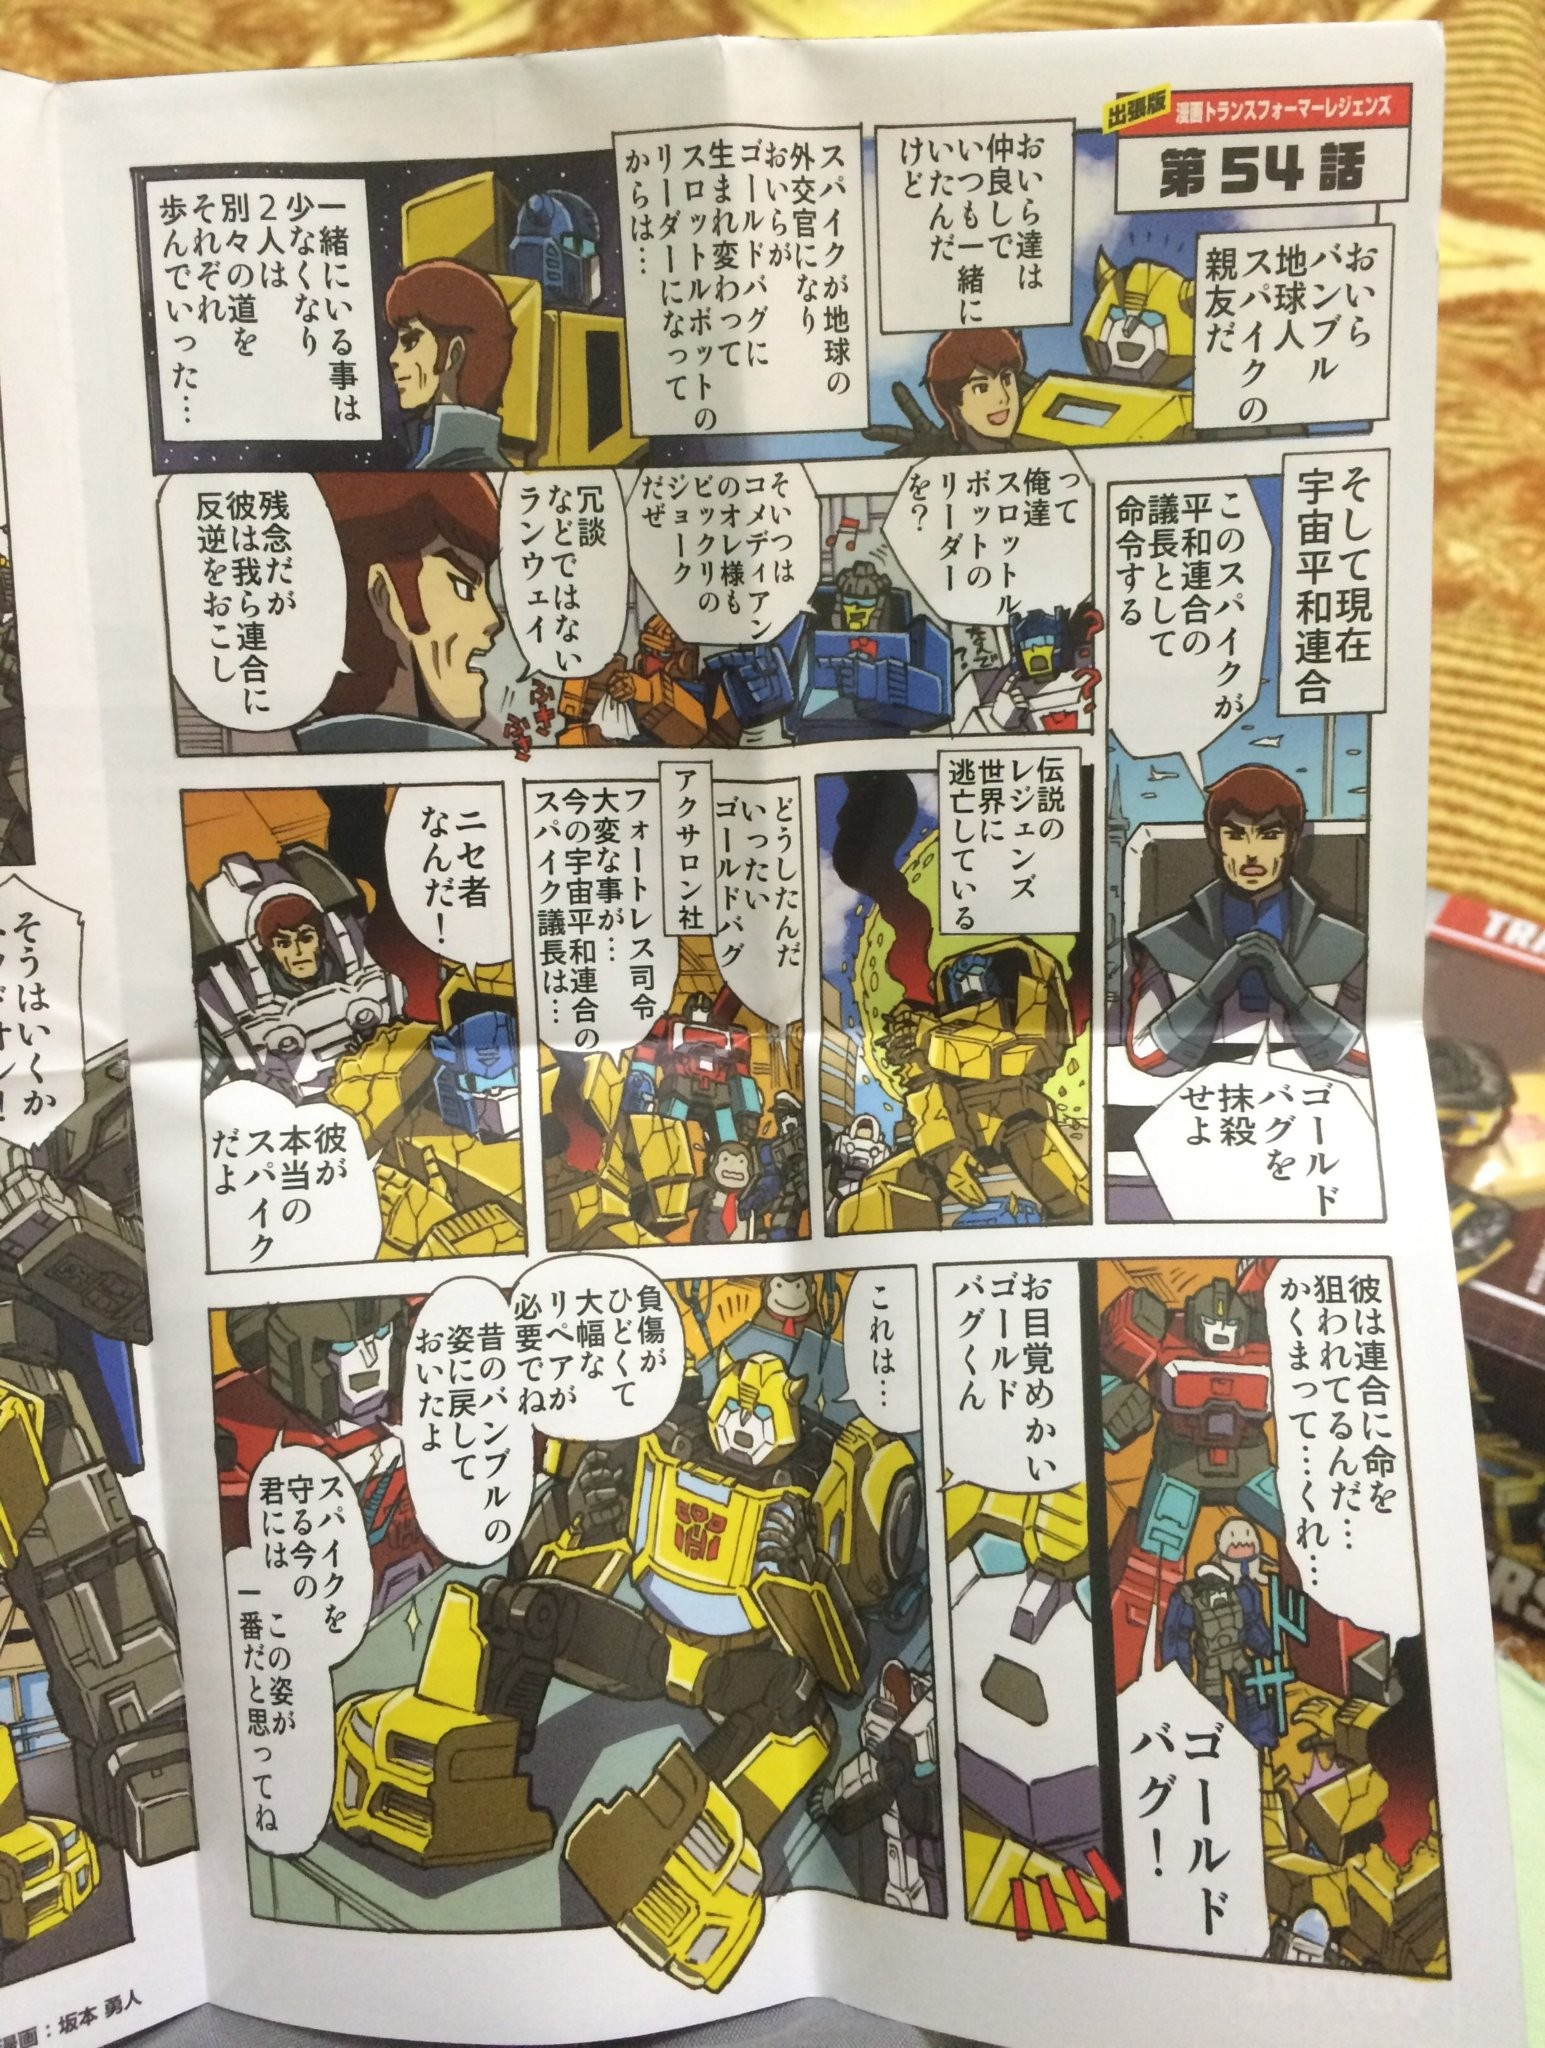 Transformers News: Takara Tomy Transformers Legends LG54 and LG55 Manga Images